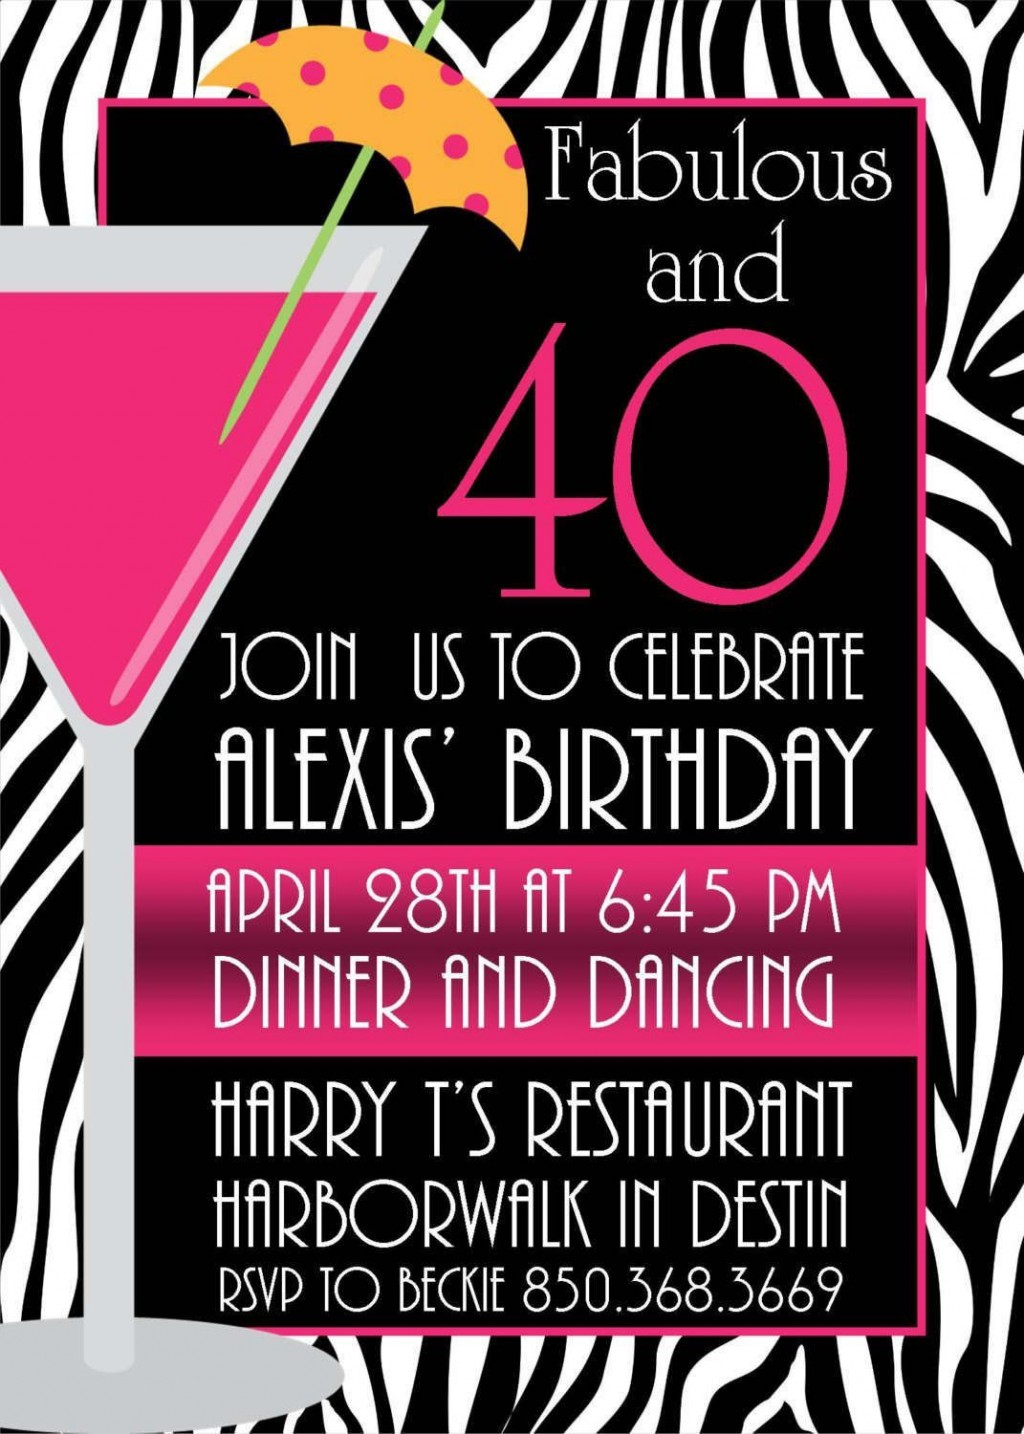 005 Breathtaking 40th Birthday Party Invite Template Free Design Large